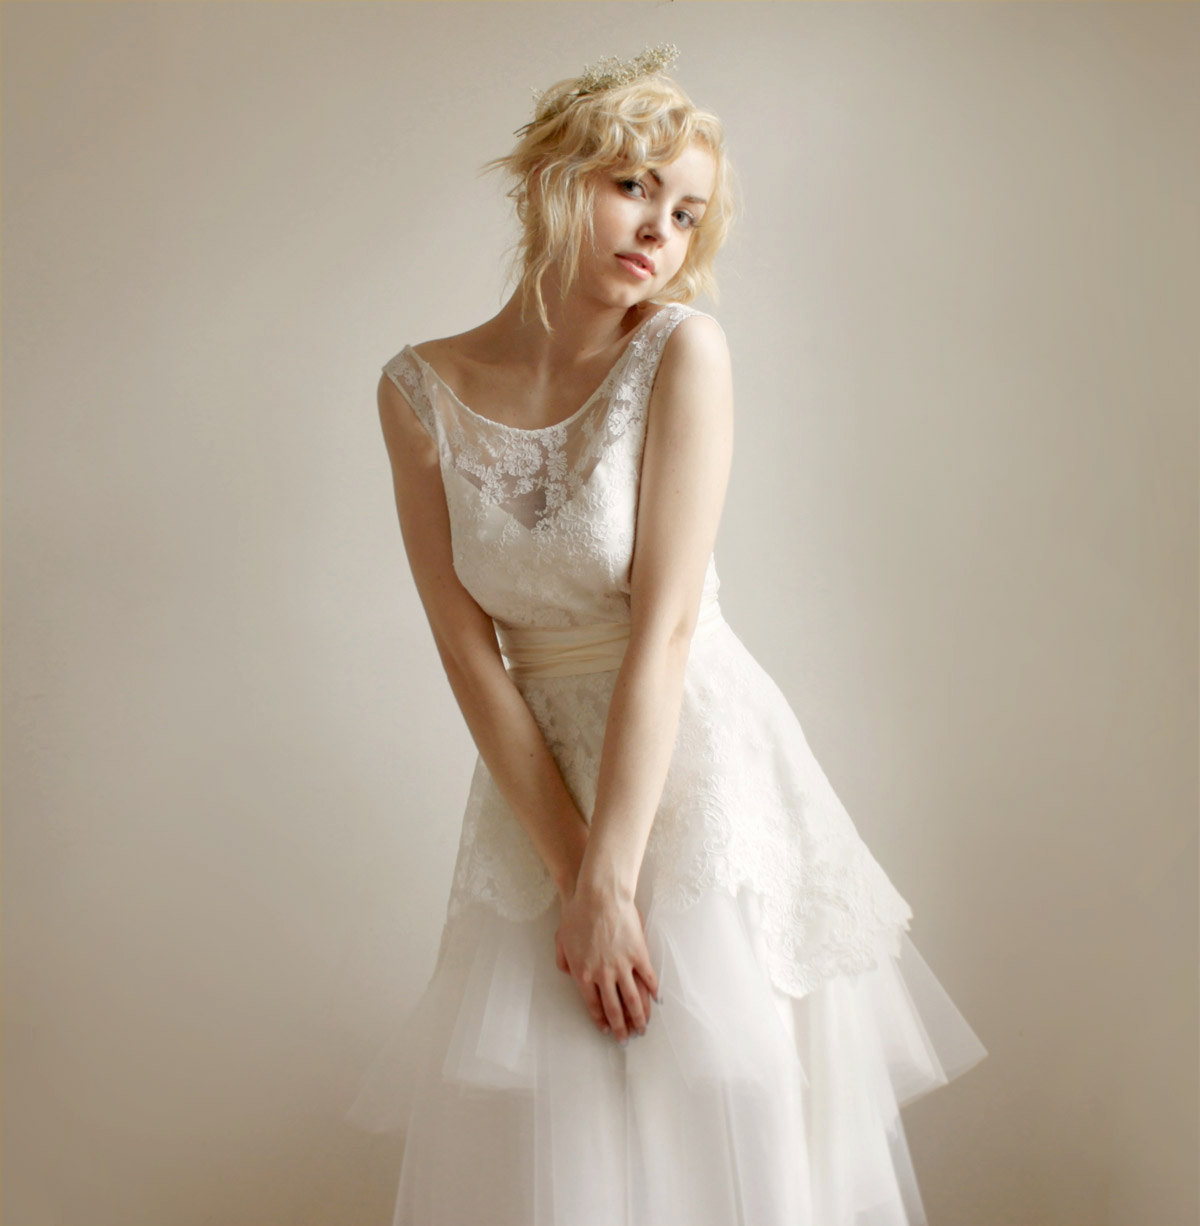 illusion neckline wedding dress sheer lace onewedcom With lace illusion neckline wedding dress